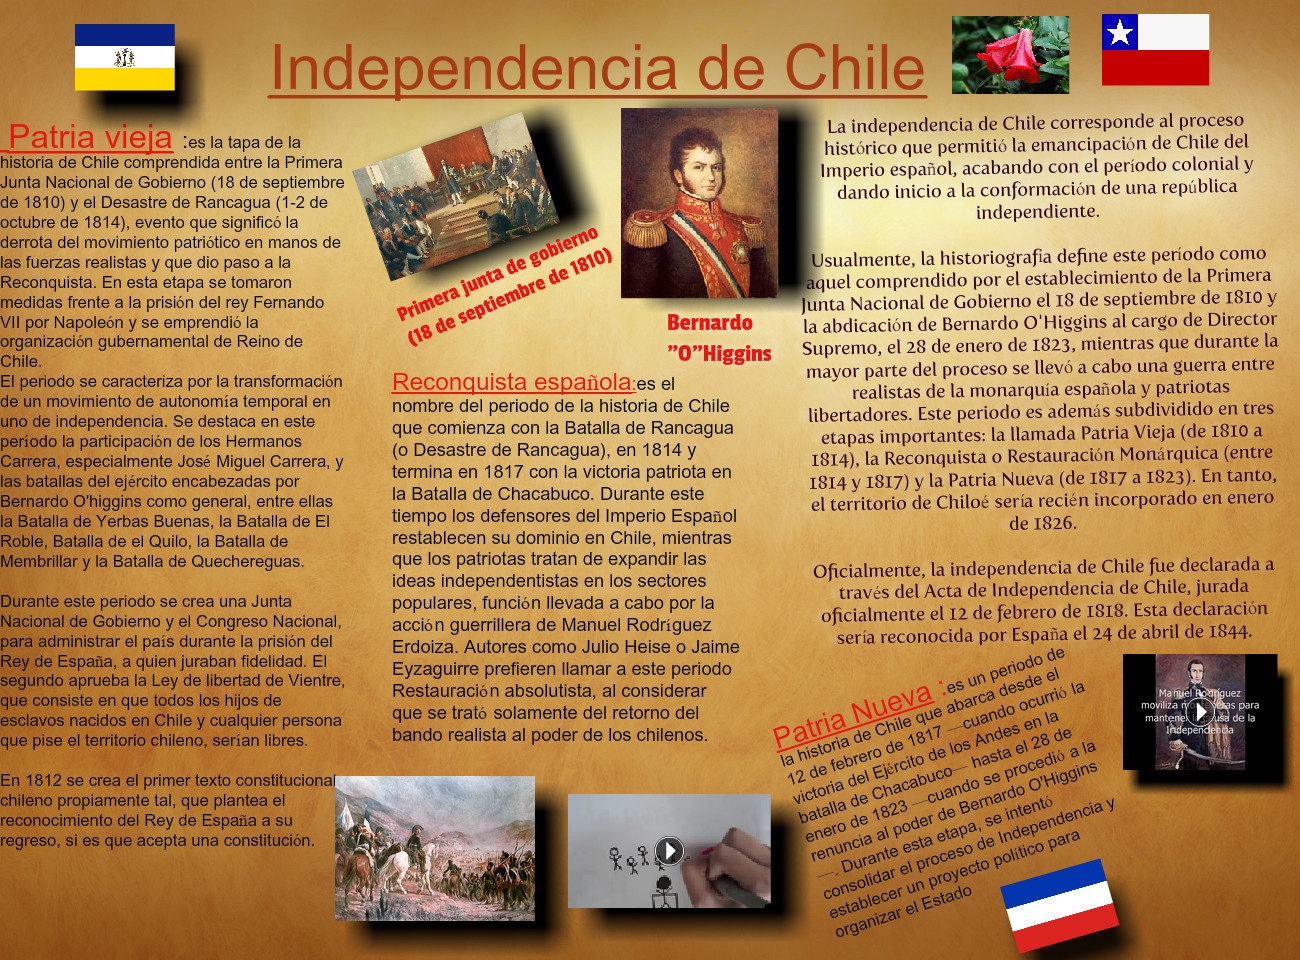 Independencia de Chile.